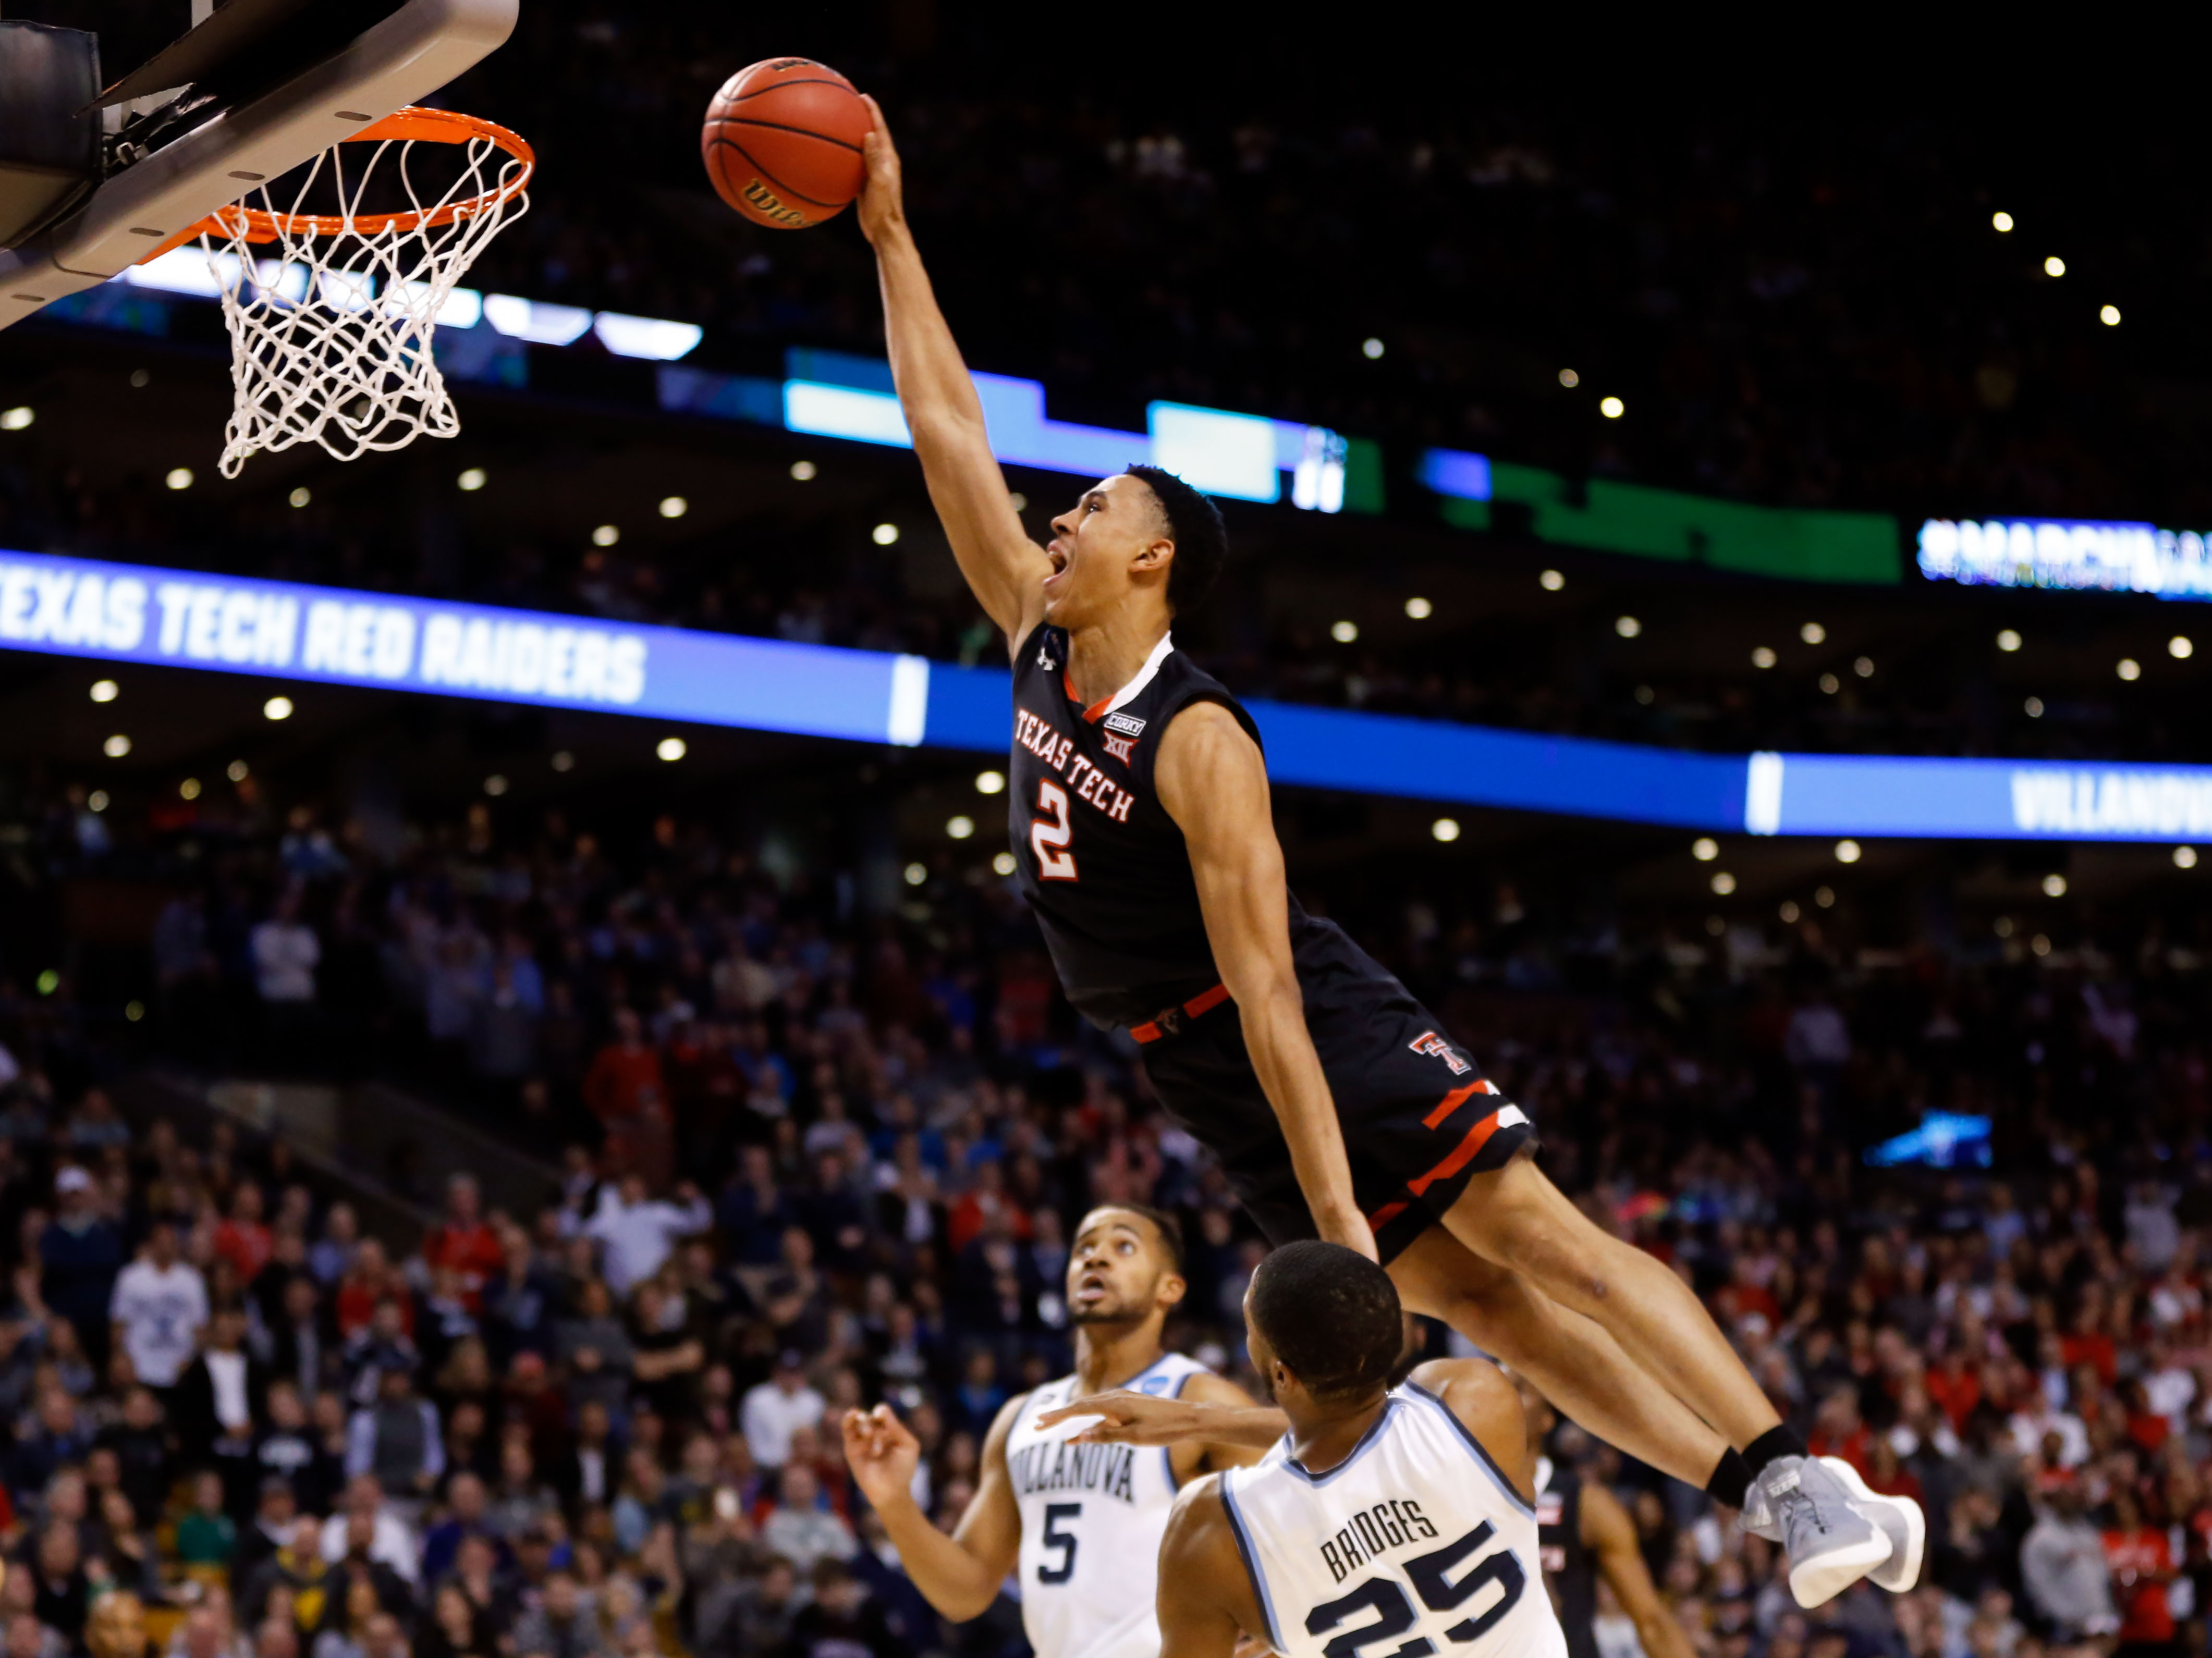 Washington Wizards take in Zhaire Smith vs. Troy Brown Jr. in latest pre-draft workout